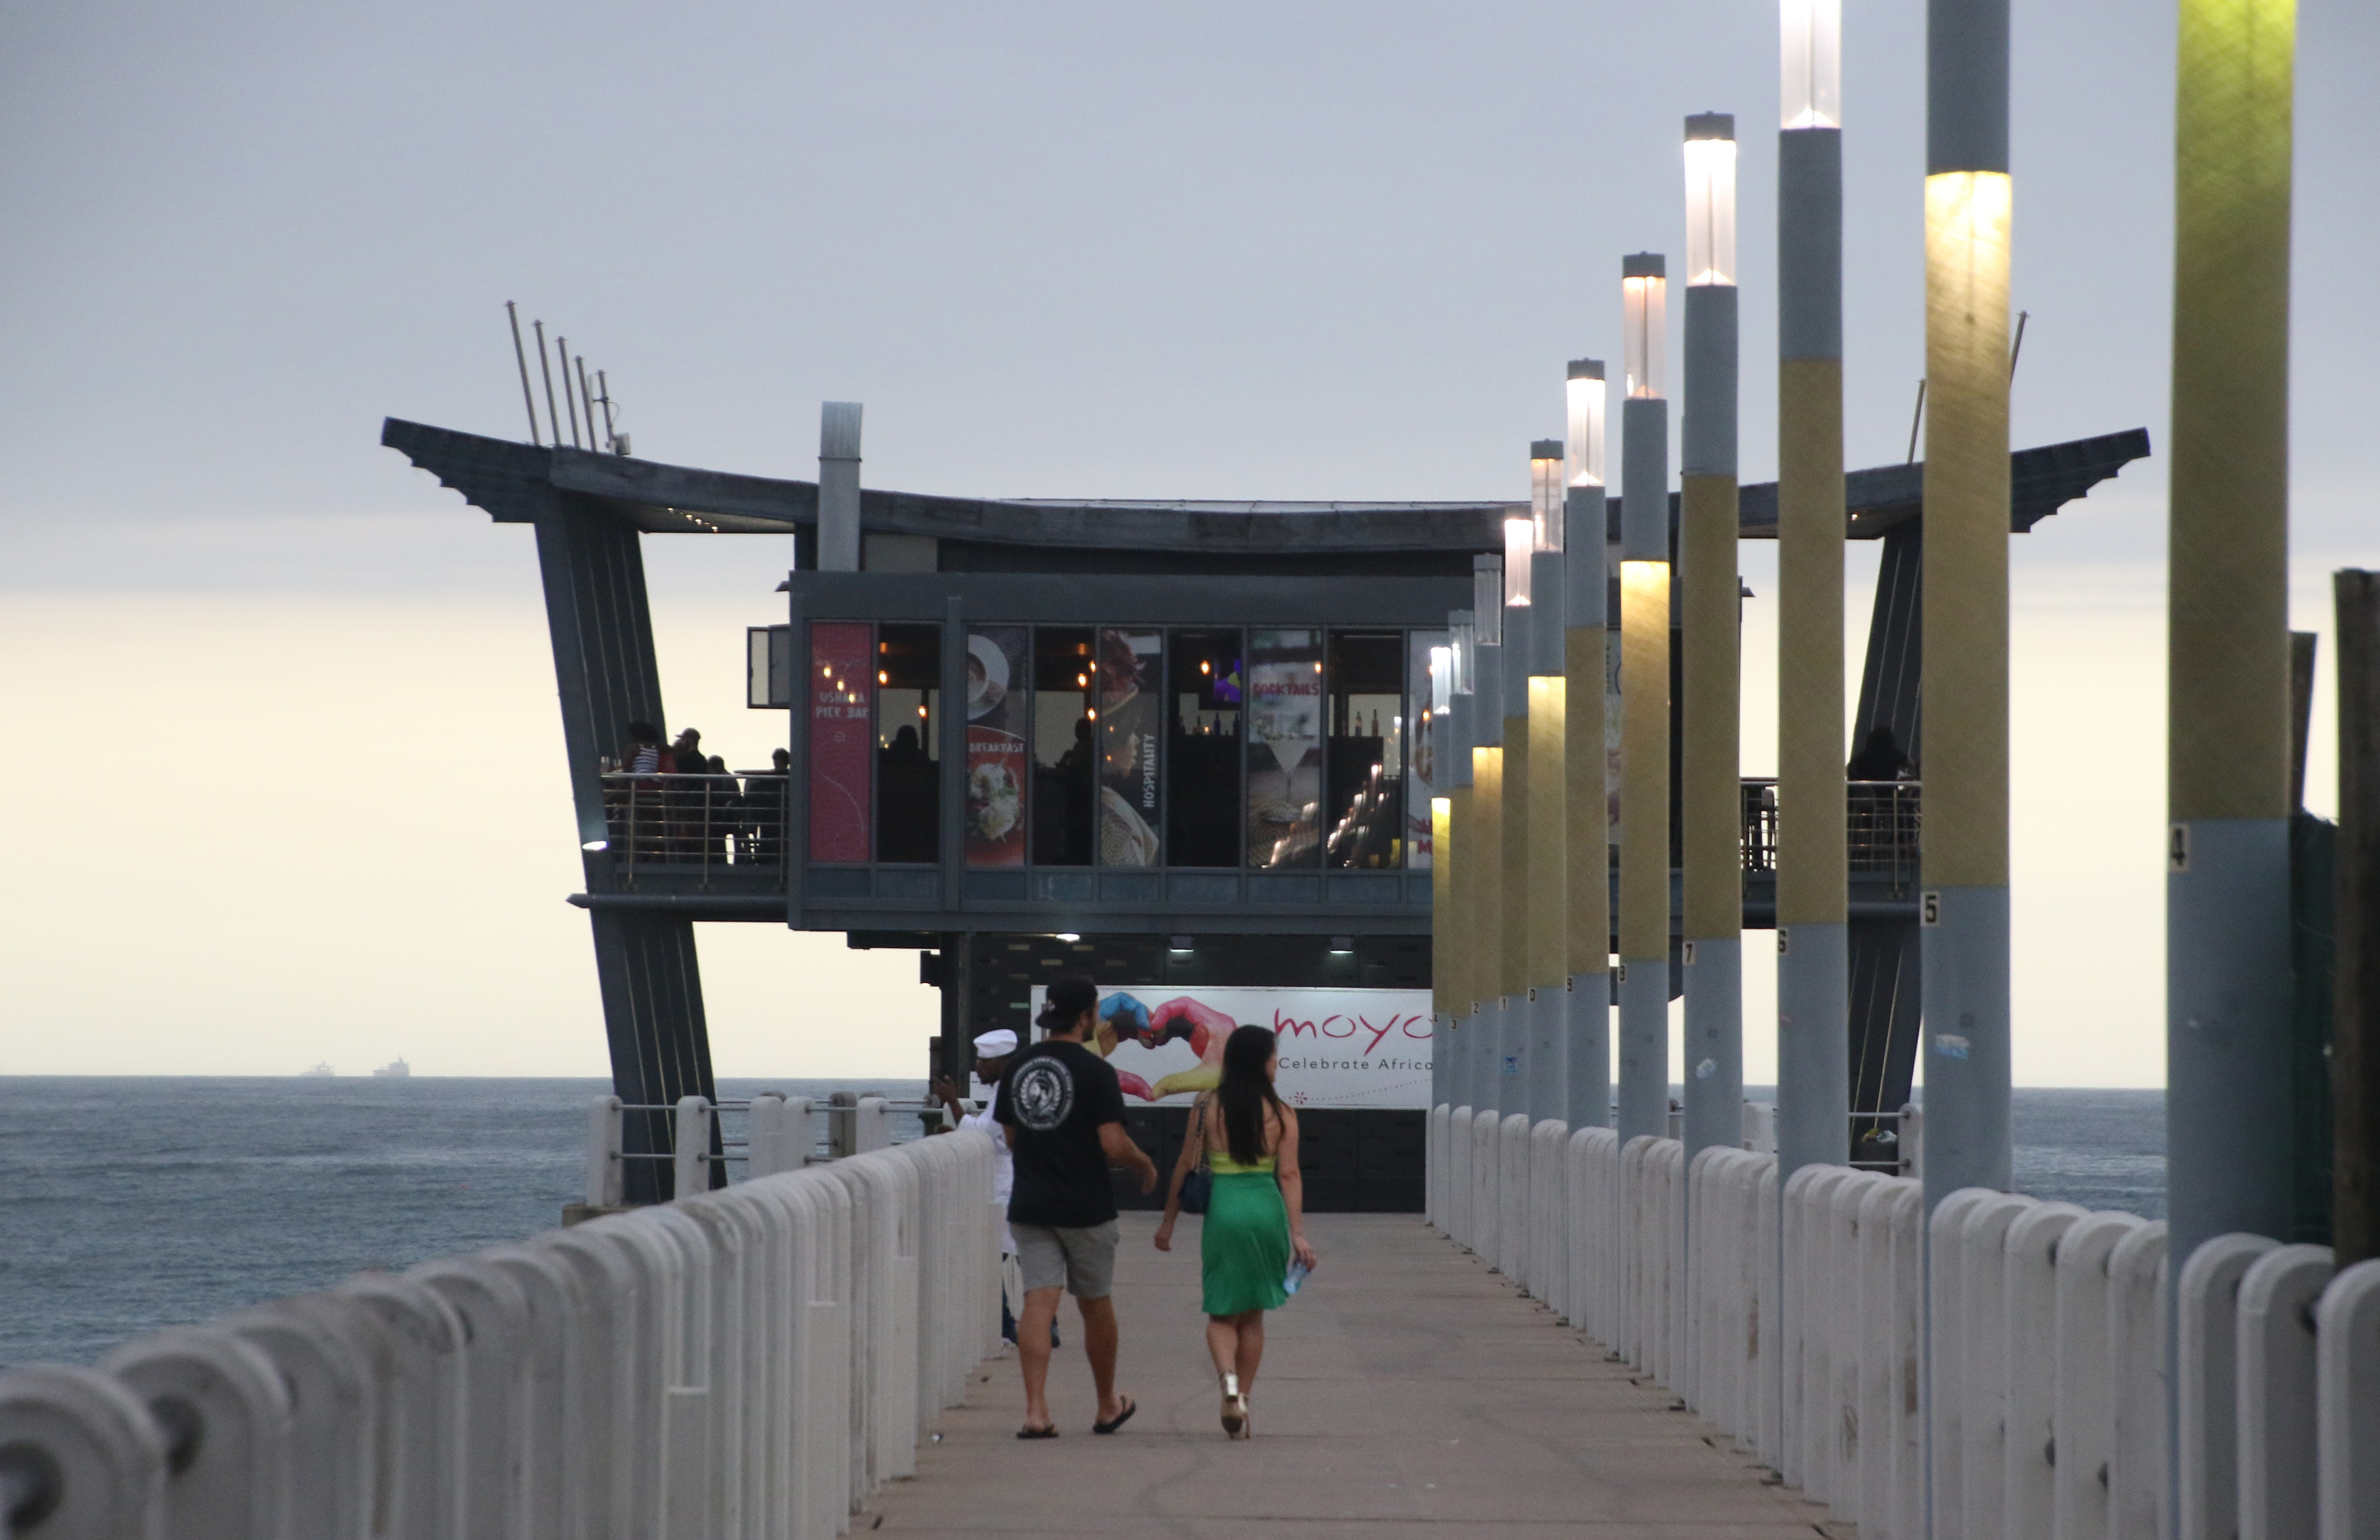 Restaurant on the pier and walking couple photo